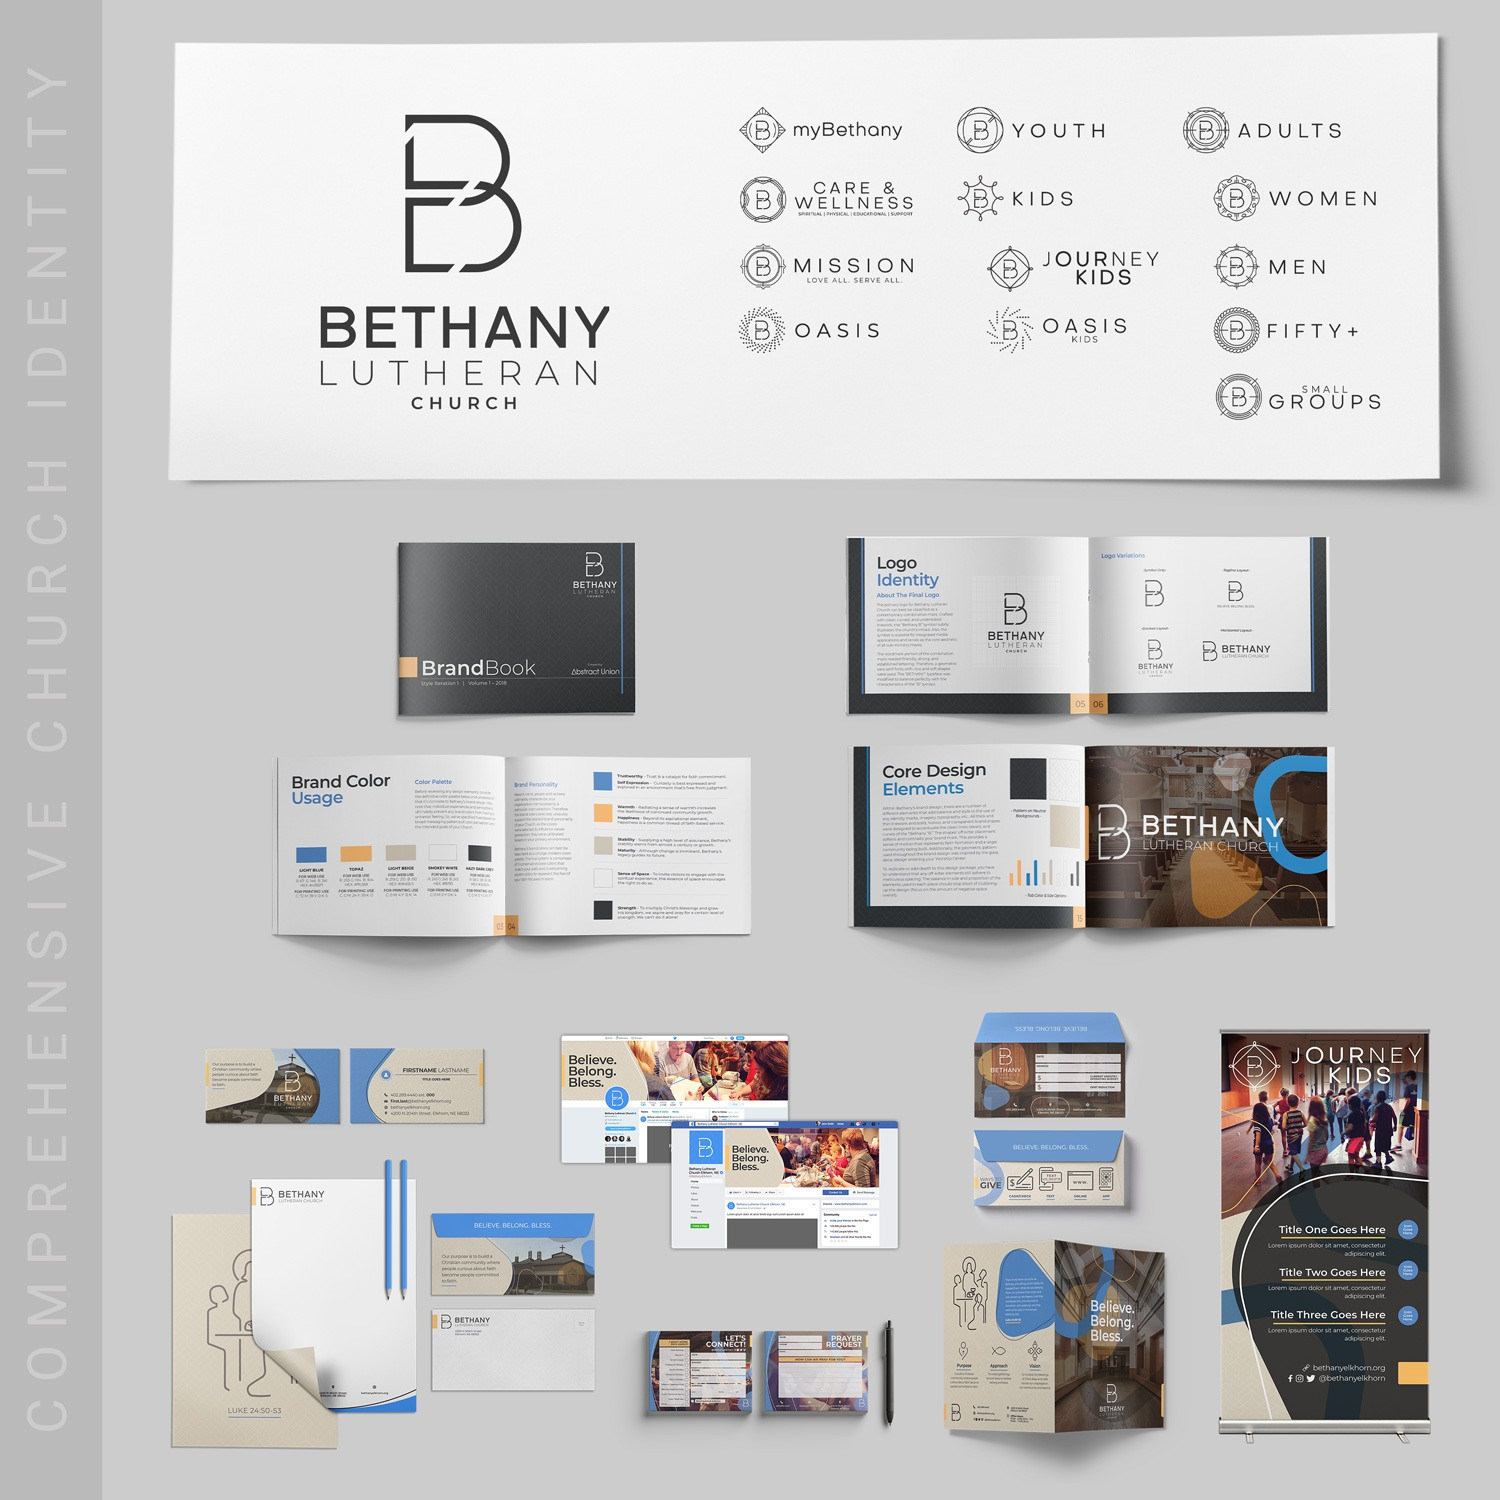 Church Logo brand design examples with sub ministry brand mark for Lutheran church branding by Abstract Union